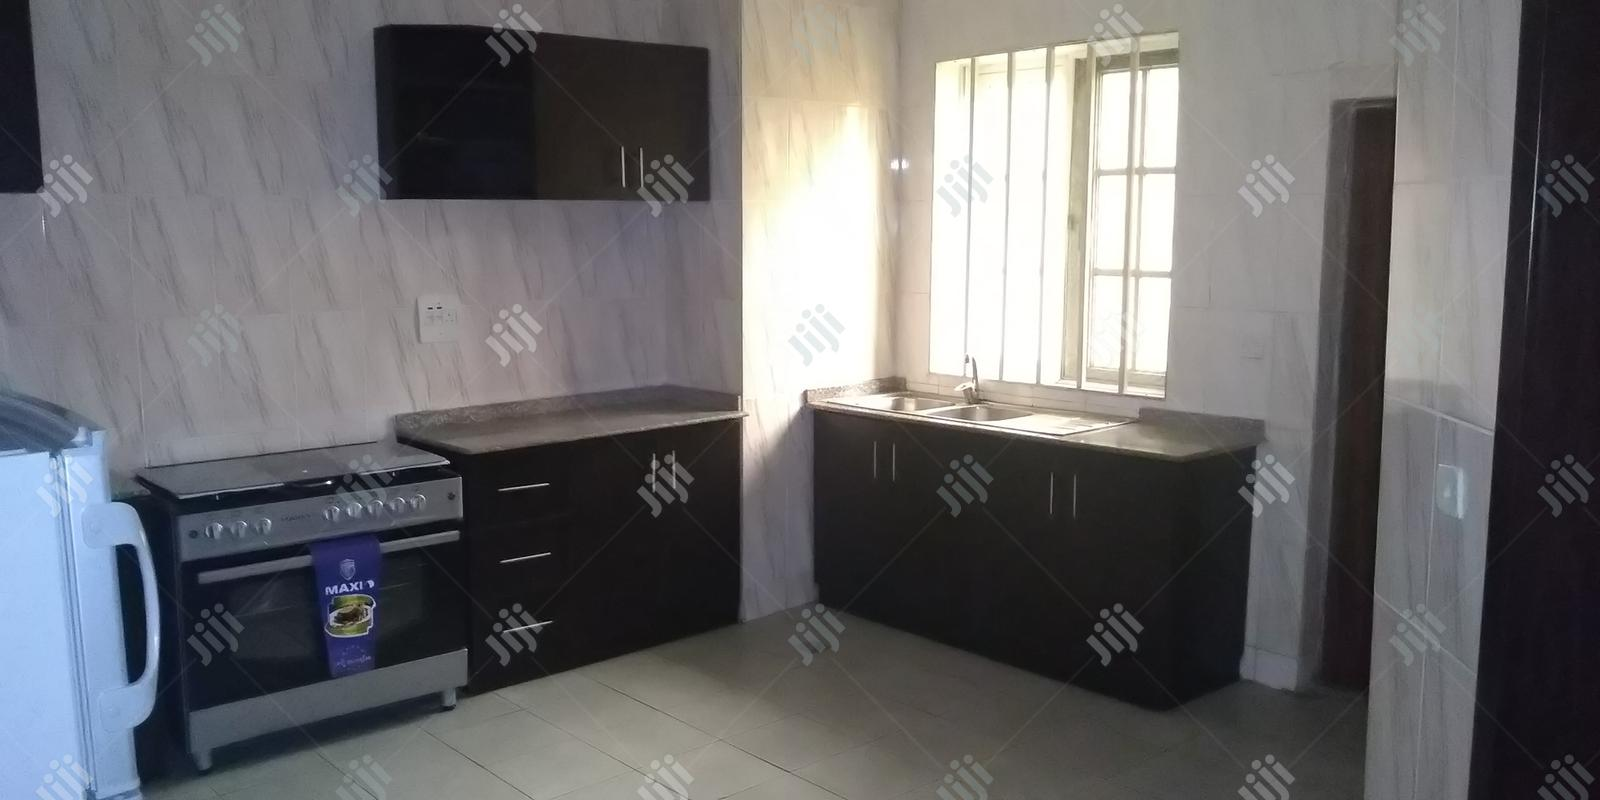 Top Notch Serviced 4bedroom Terrace Duplex + Bq, 24/7 Light | Houses & Apartments For Rent for sale in Maitama, Abuja (FCT) State, Nigeria